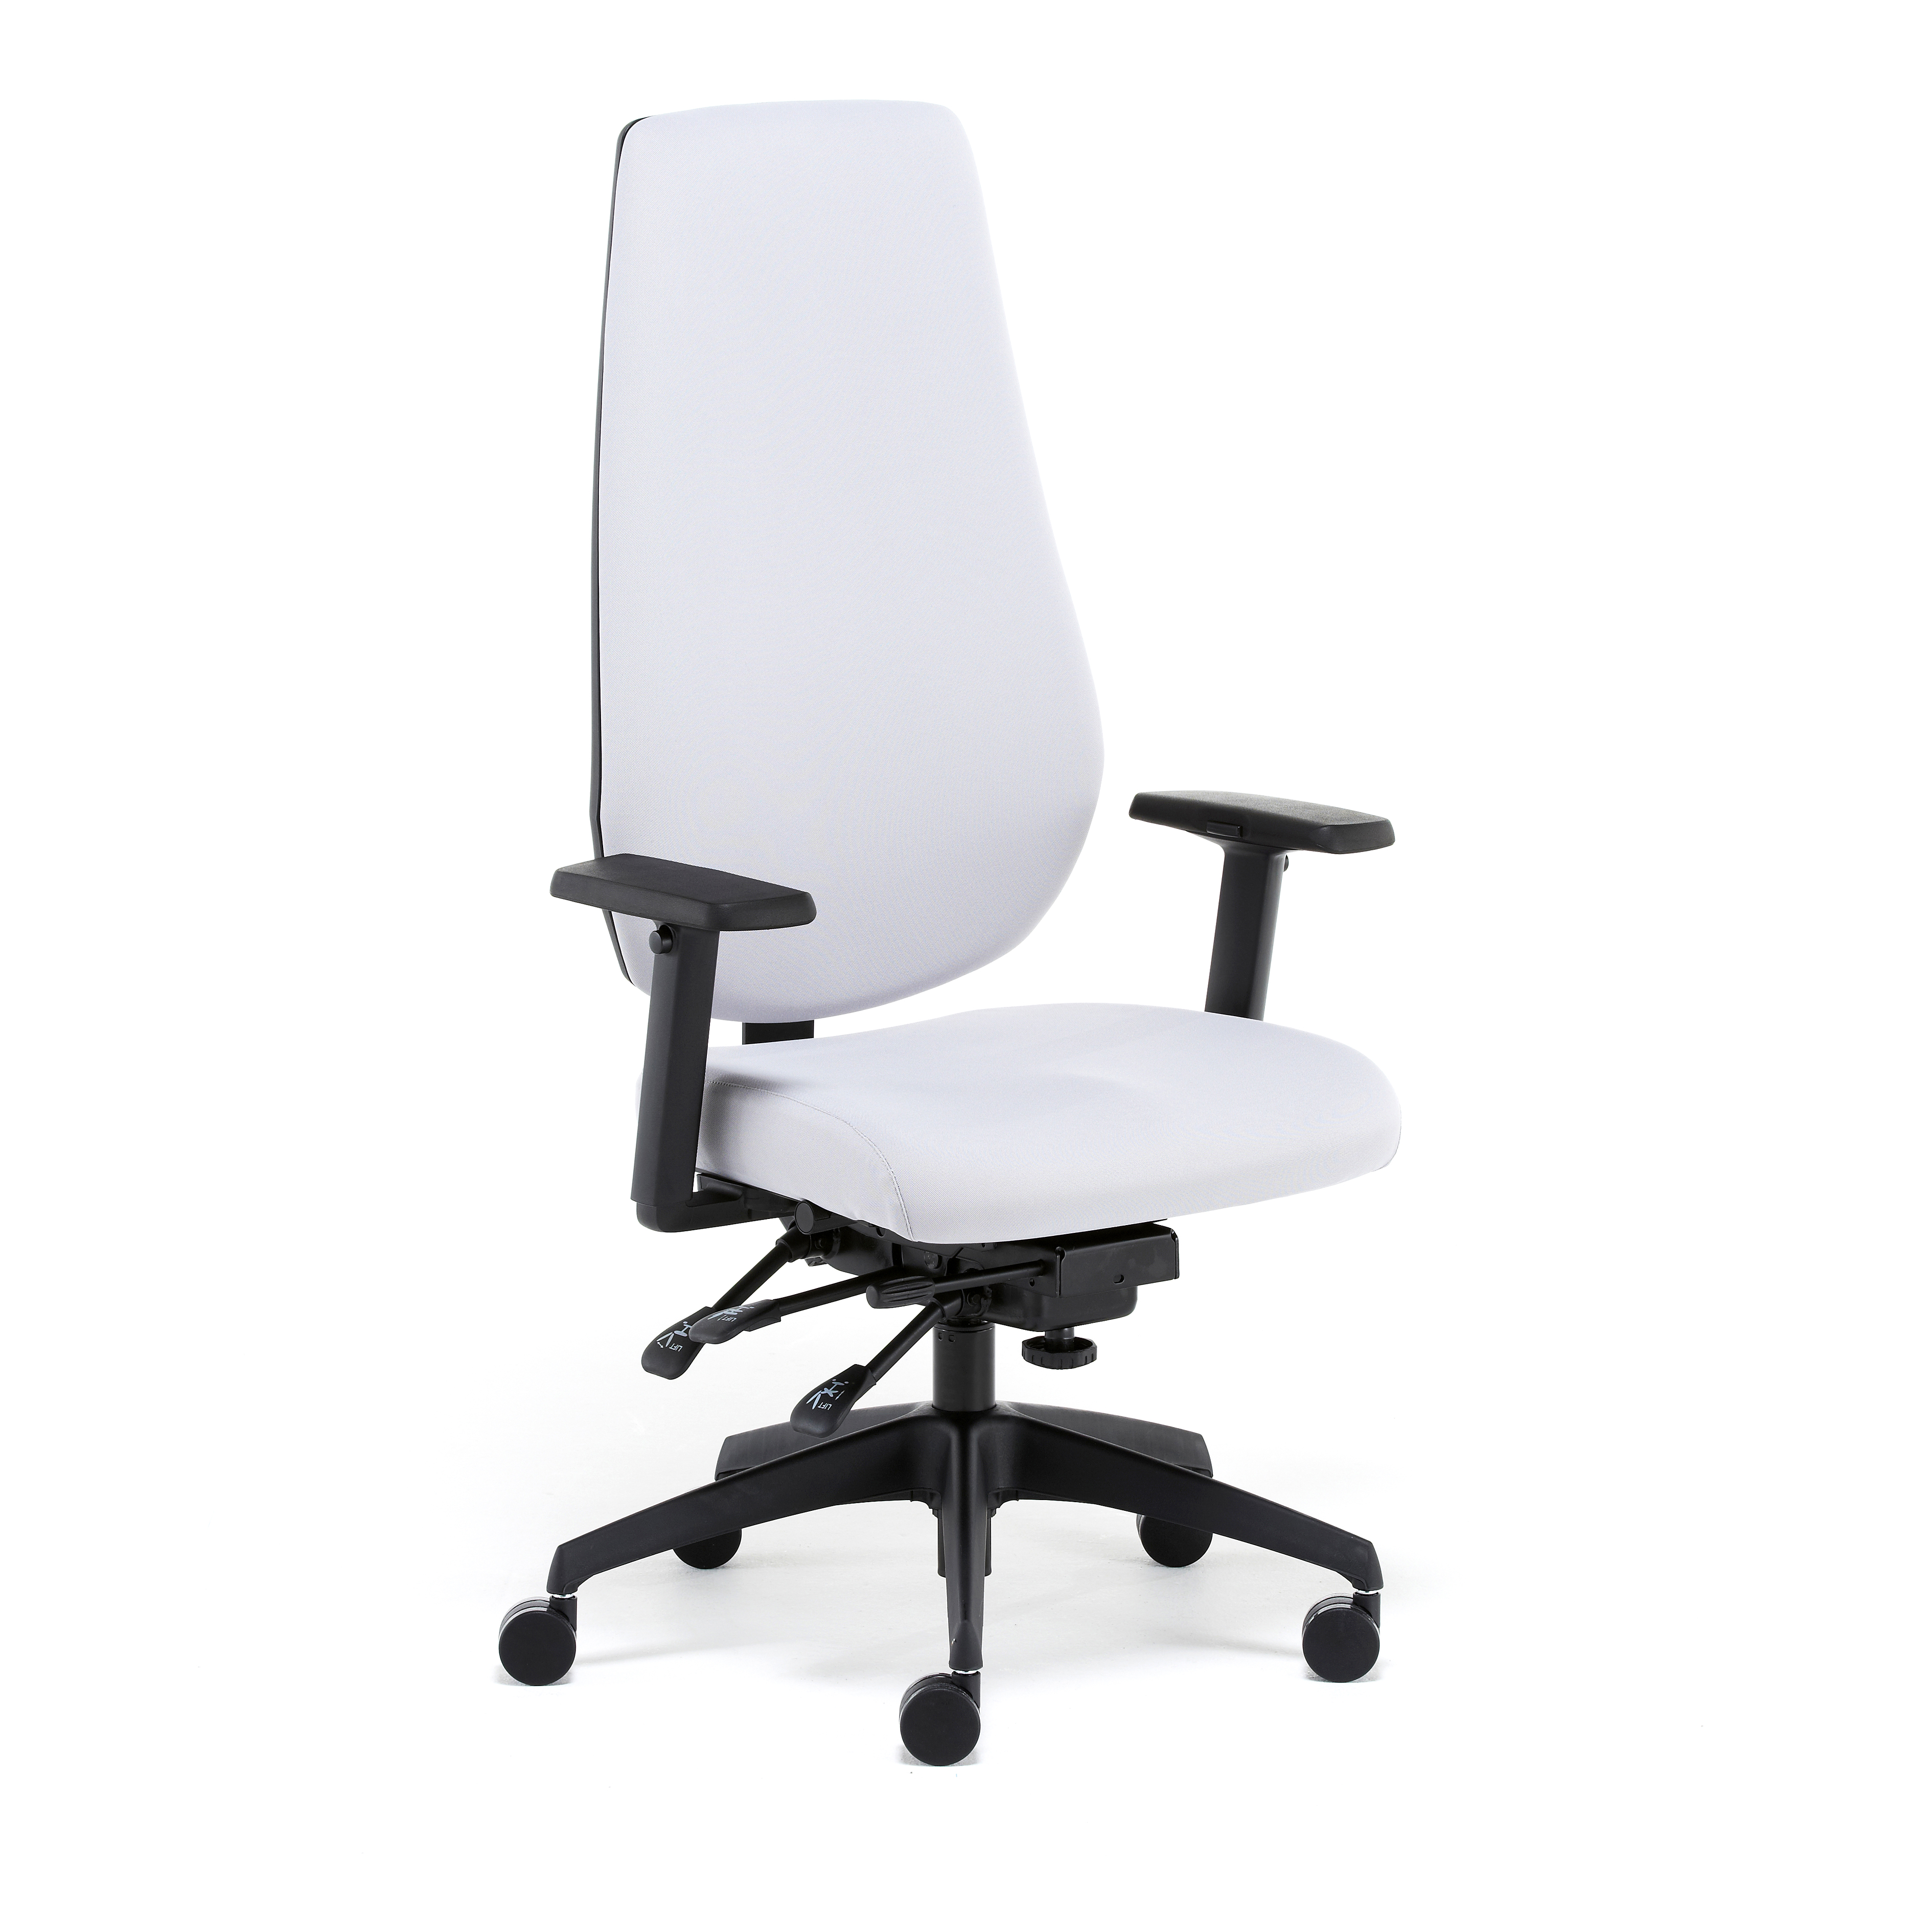 Distinctive and total comfort leather office managerial chair which provides cervical, thoracic, lumbar and pelvic comfort during the day.